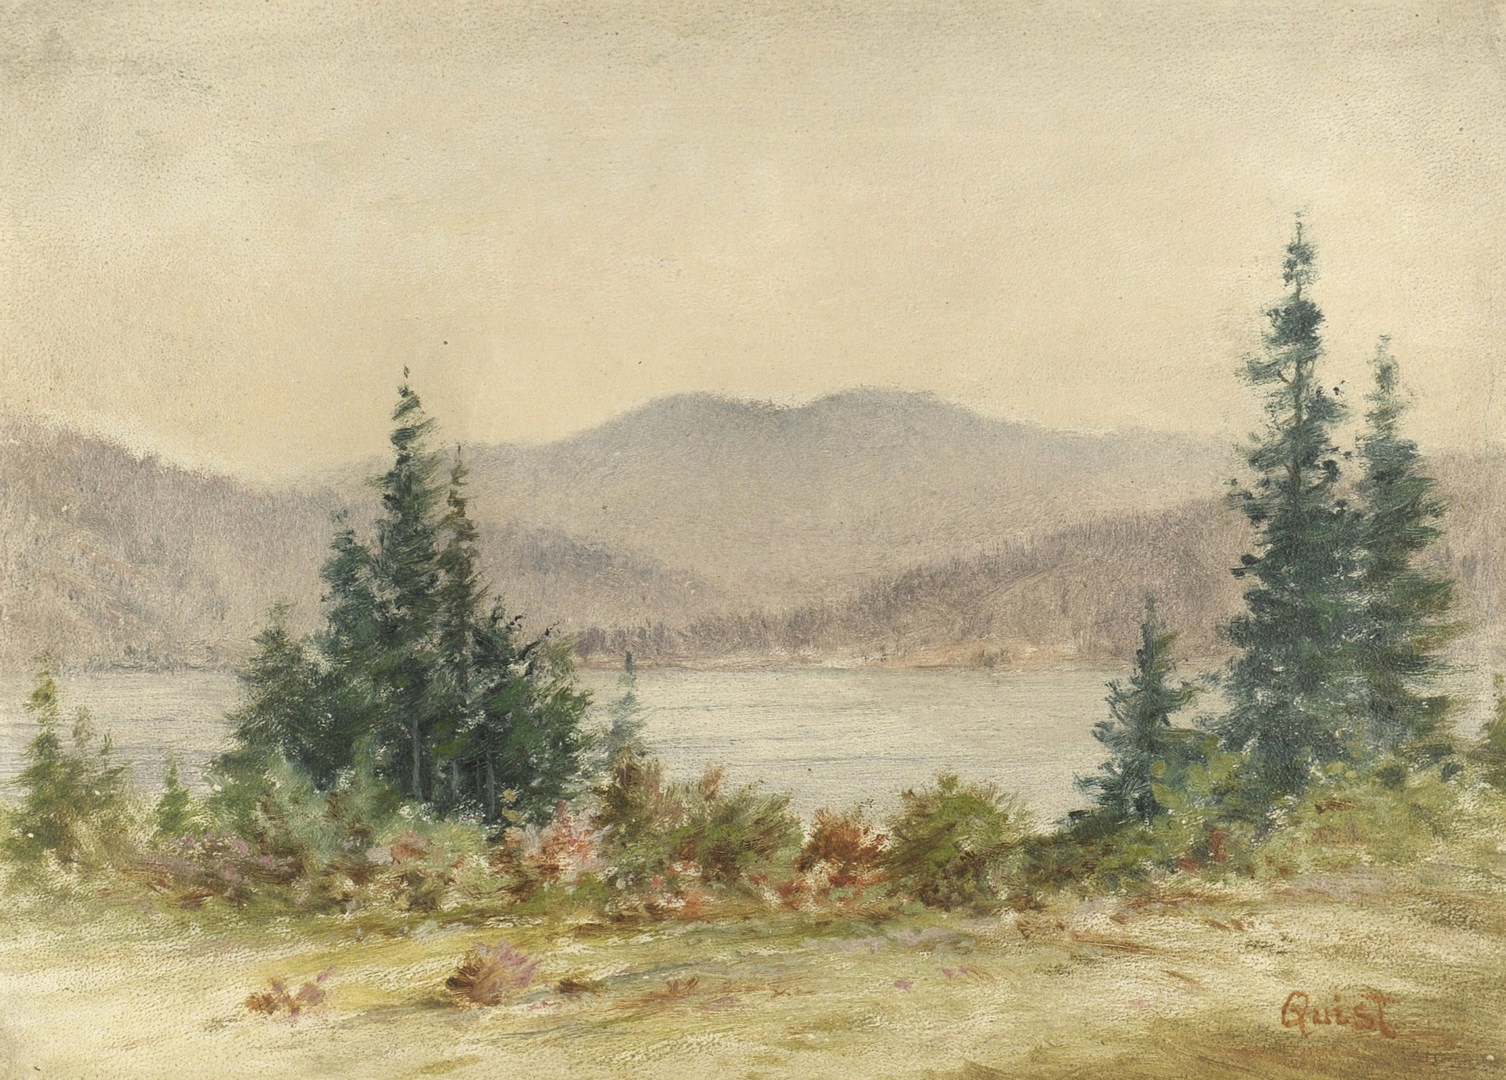 Lot 31: TN landscape signed Quist, attrib. T. Campbell